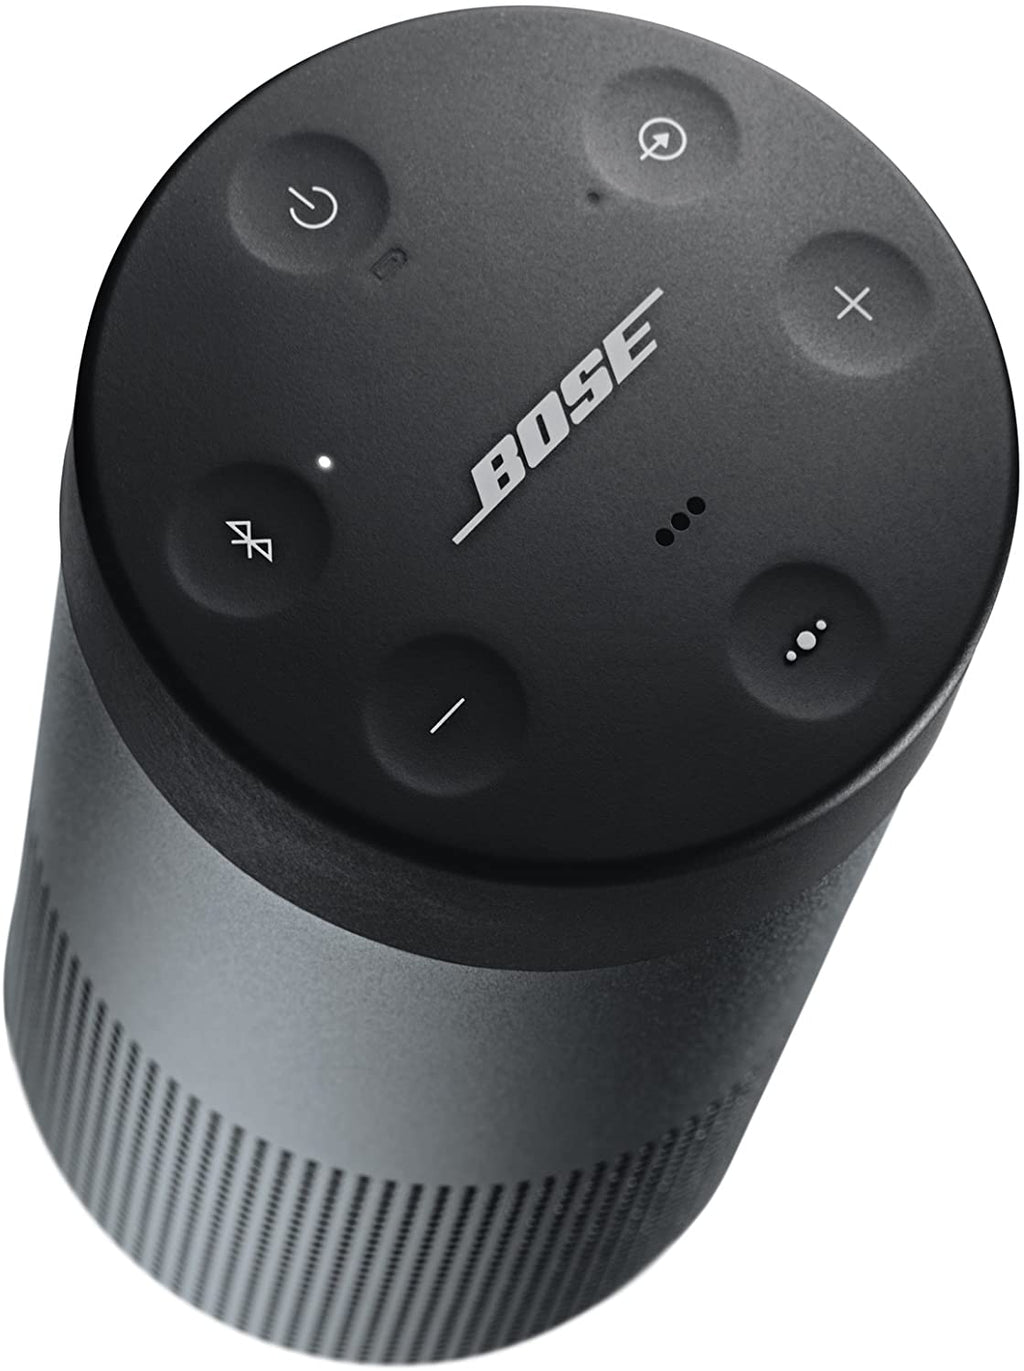 Bose Revolve Portable Bluetooth Speaker